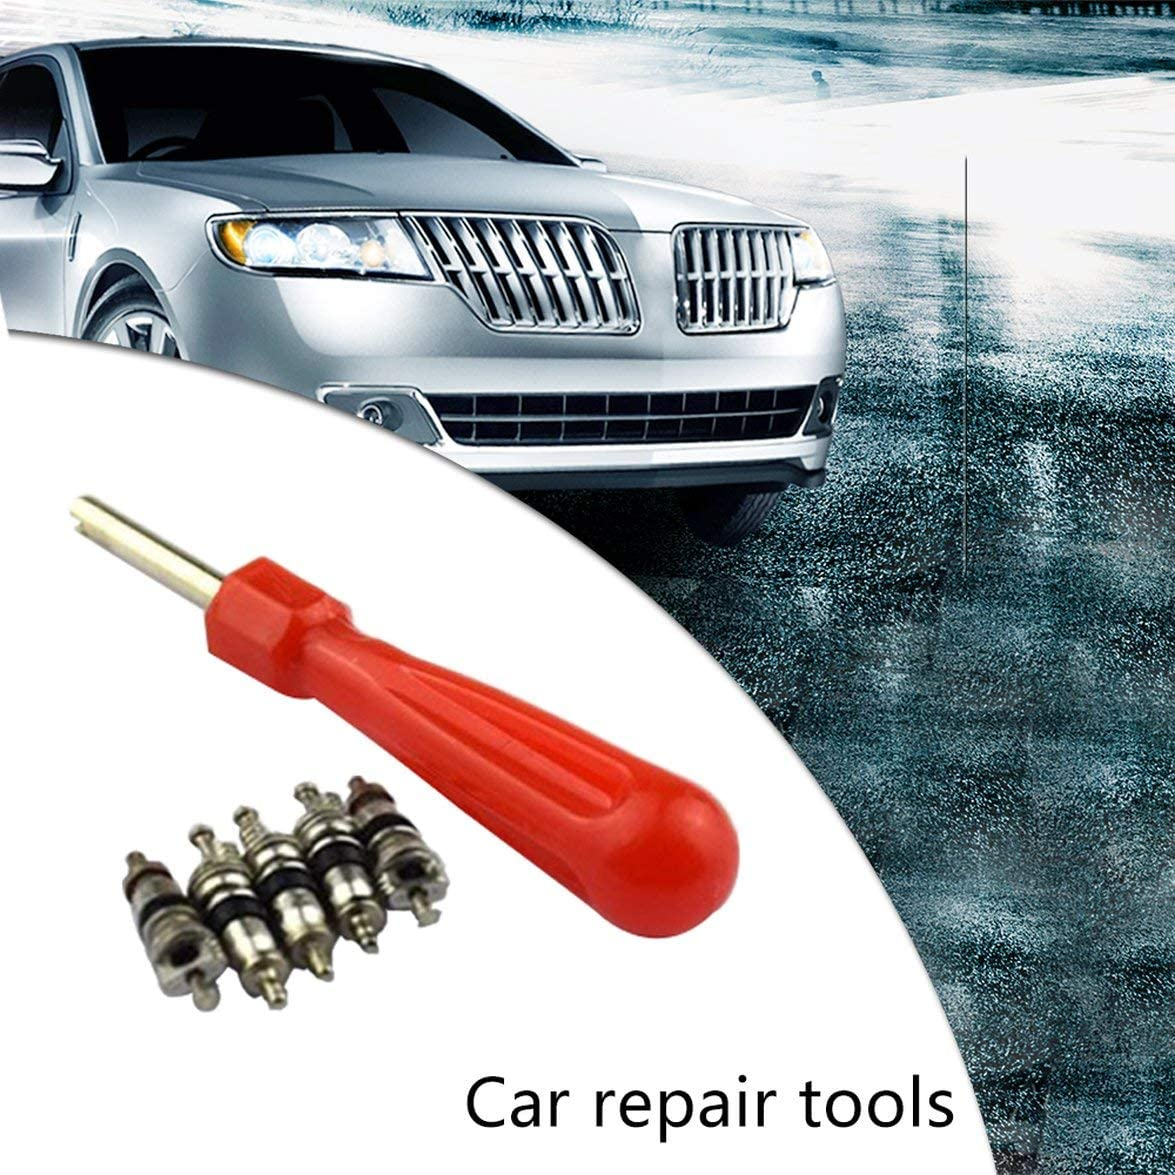 Romirofs Automobile Car Tire Valve Stem Core Remover Installer Tools with 5 Valve Cores Tire Repair Tool Kit